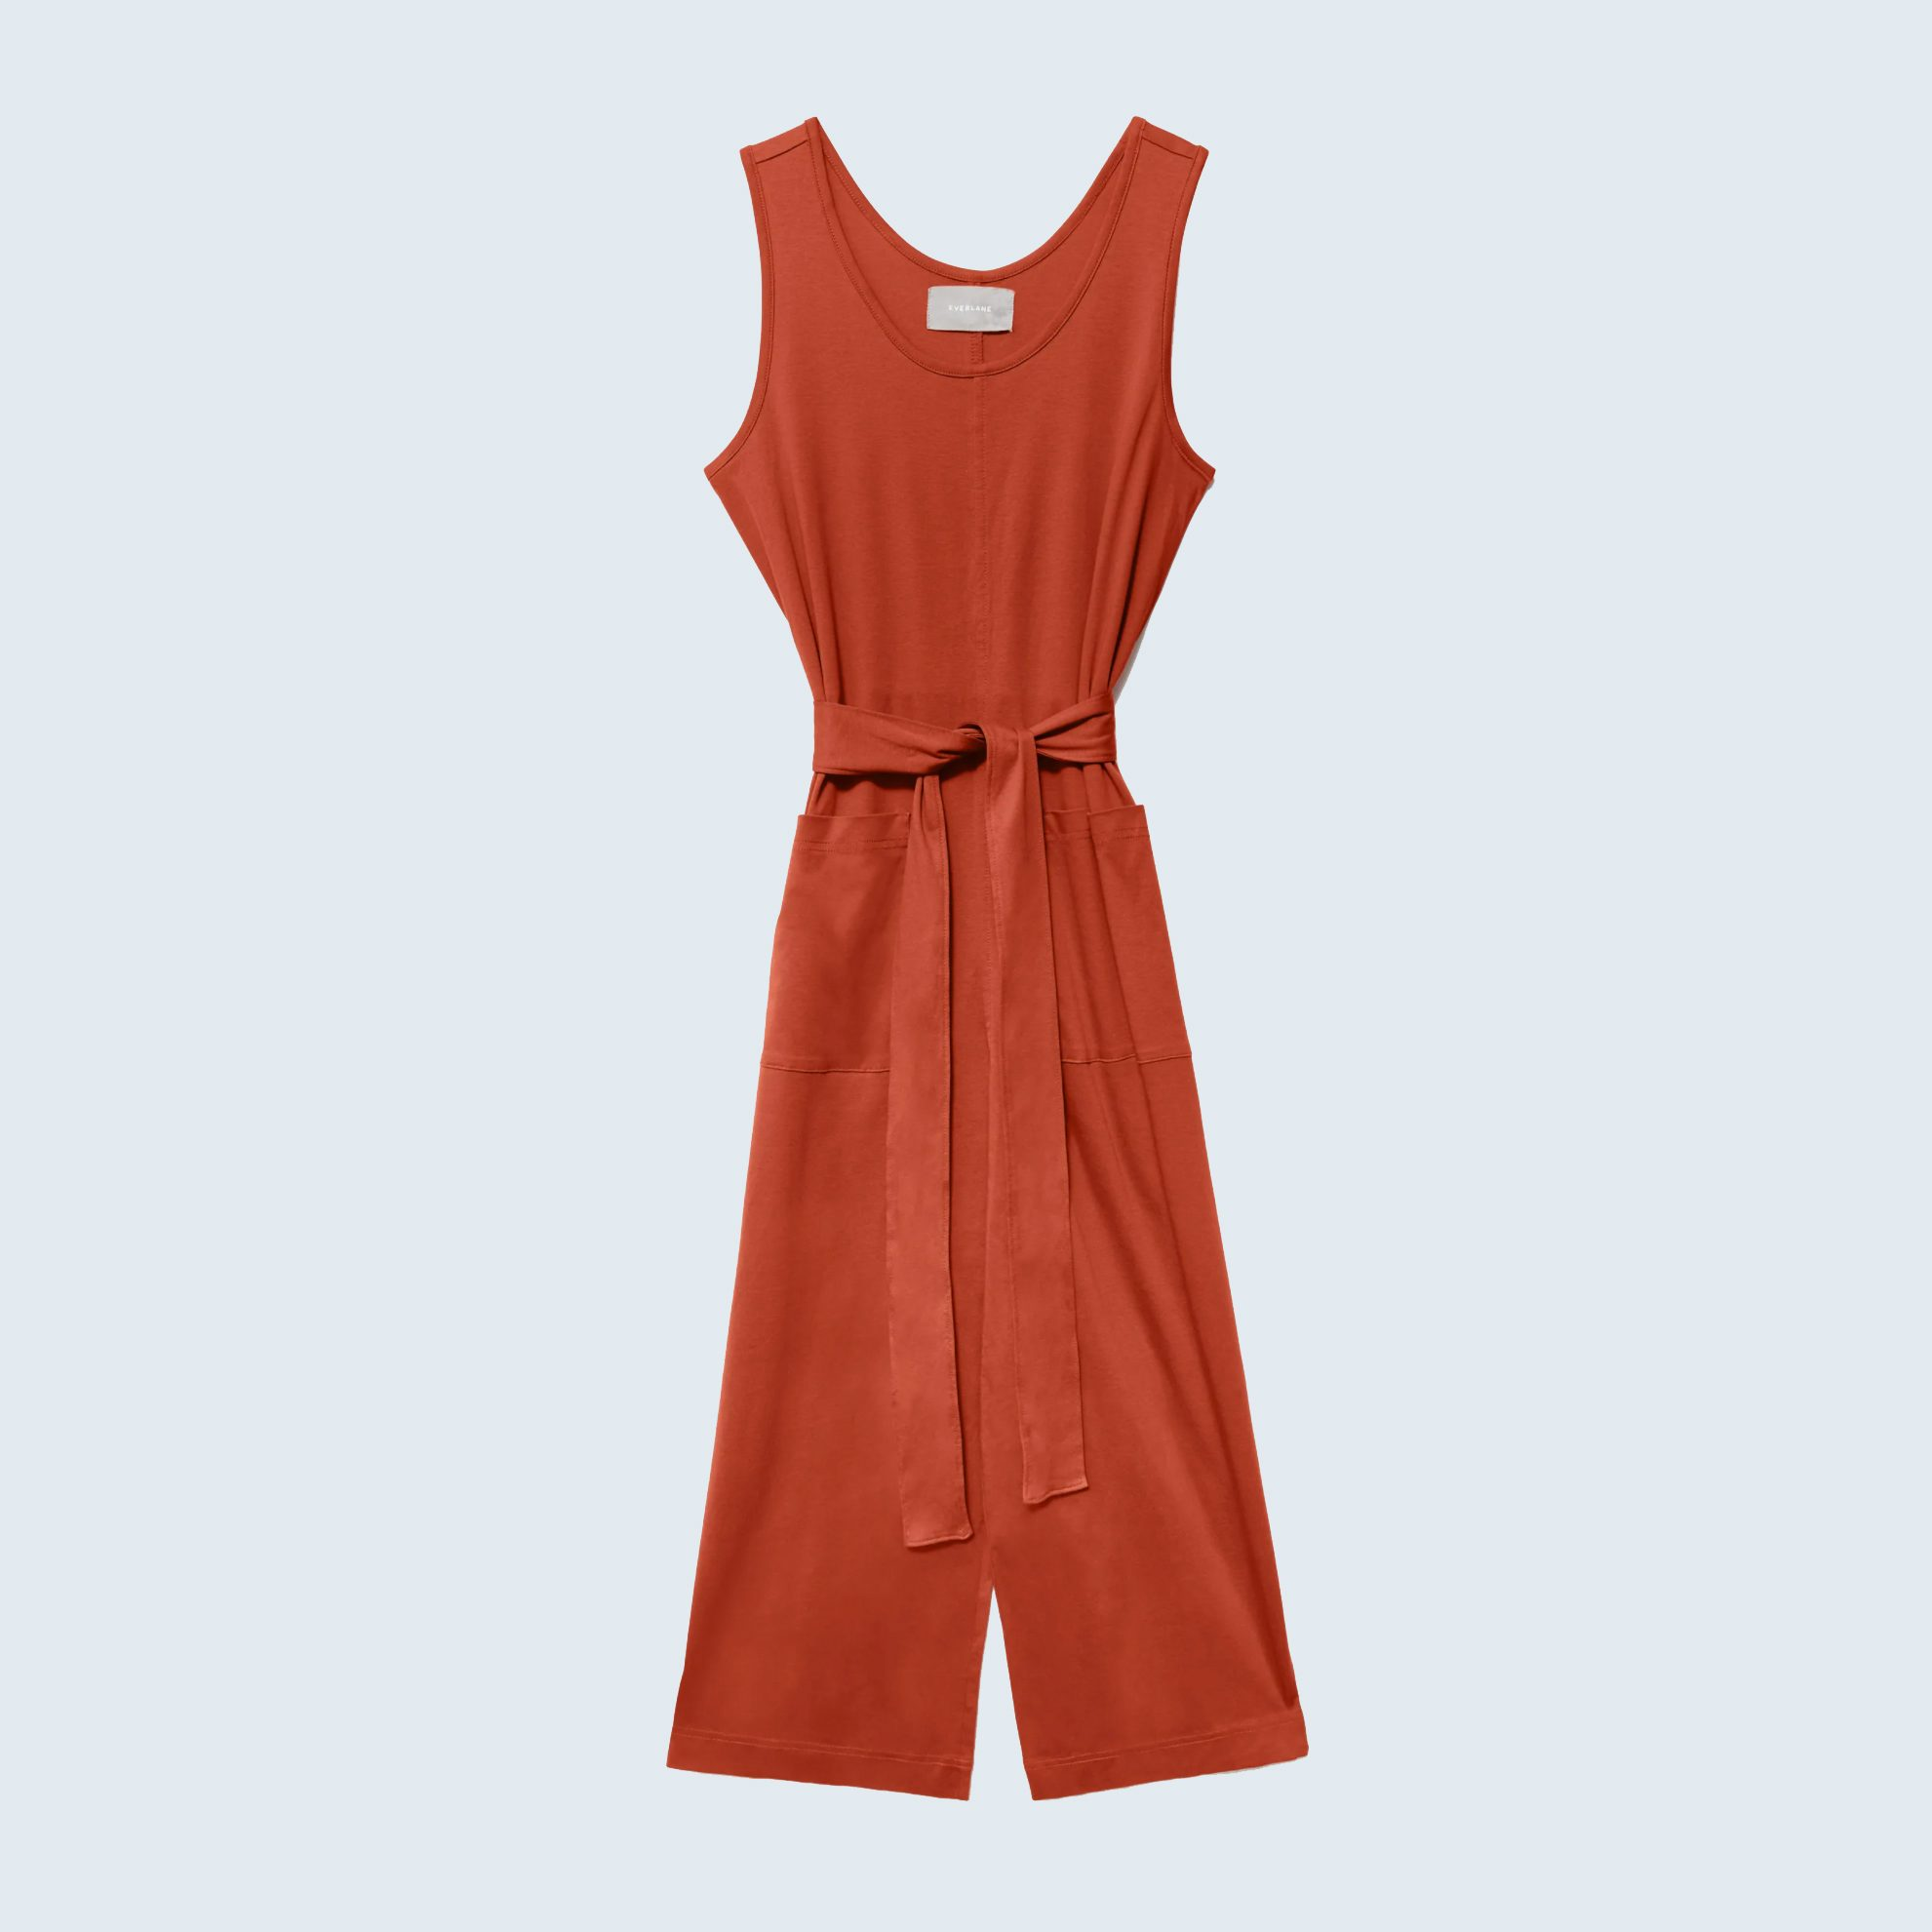 The Luxe Cotton Jumpsuit from Everlane